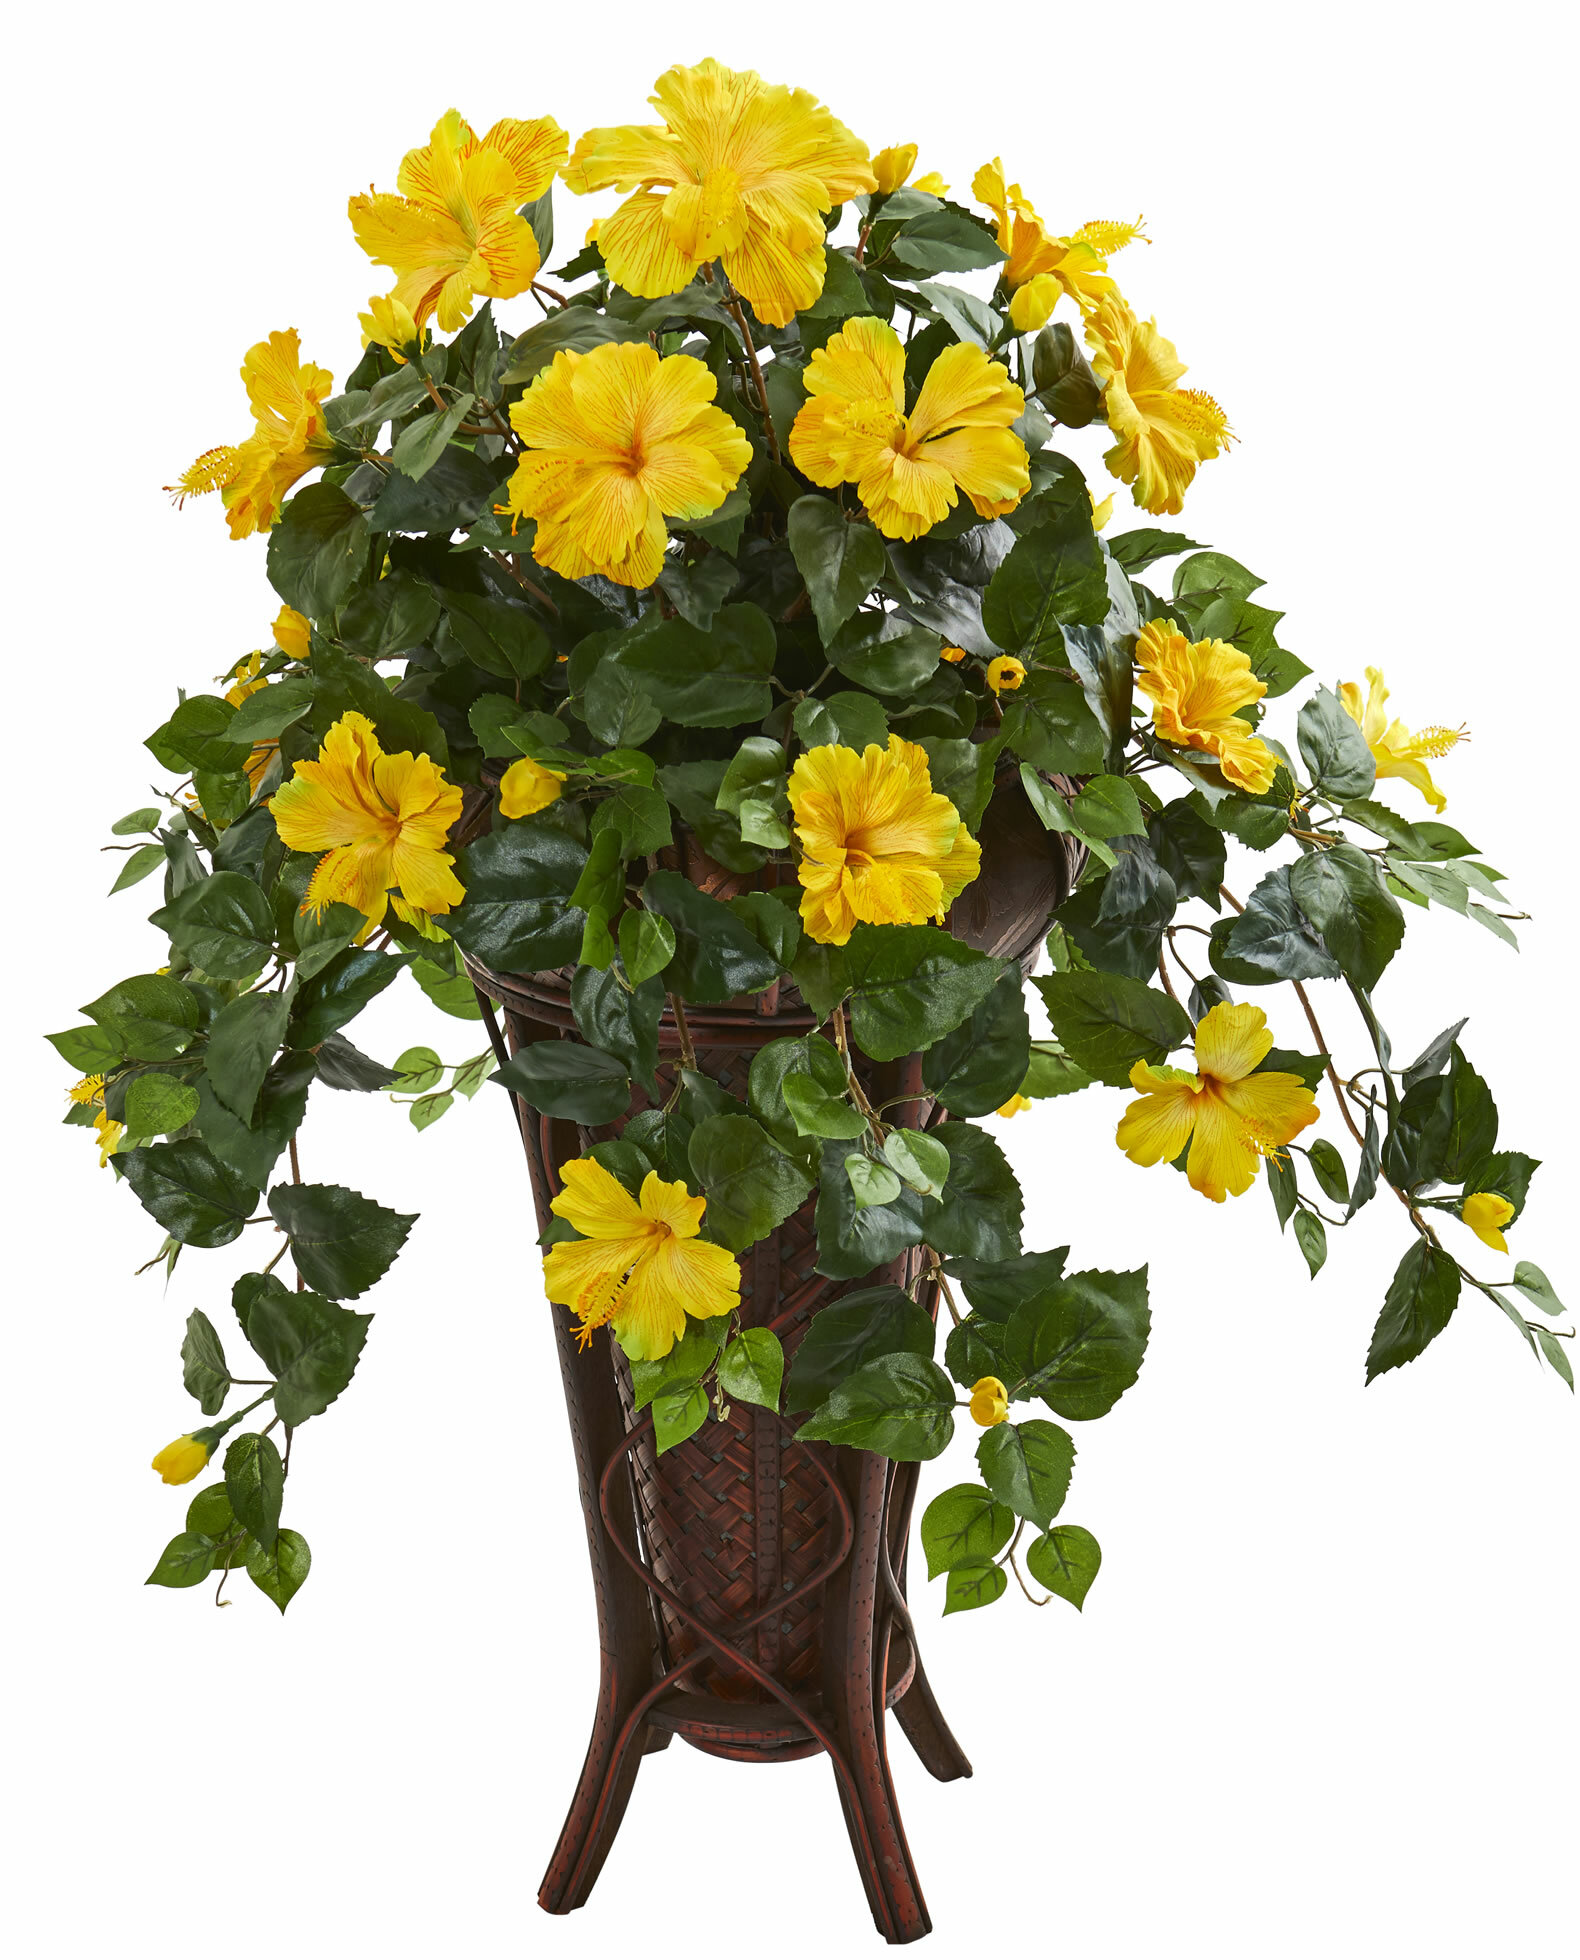 Darby Home Co Artificial Hibiscus Floral Arrangement In Stand